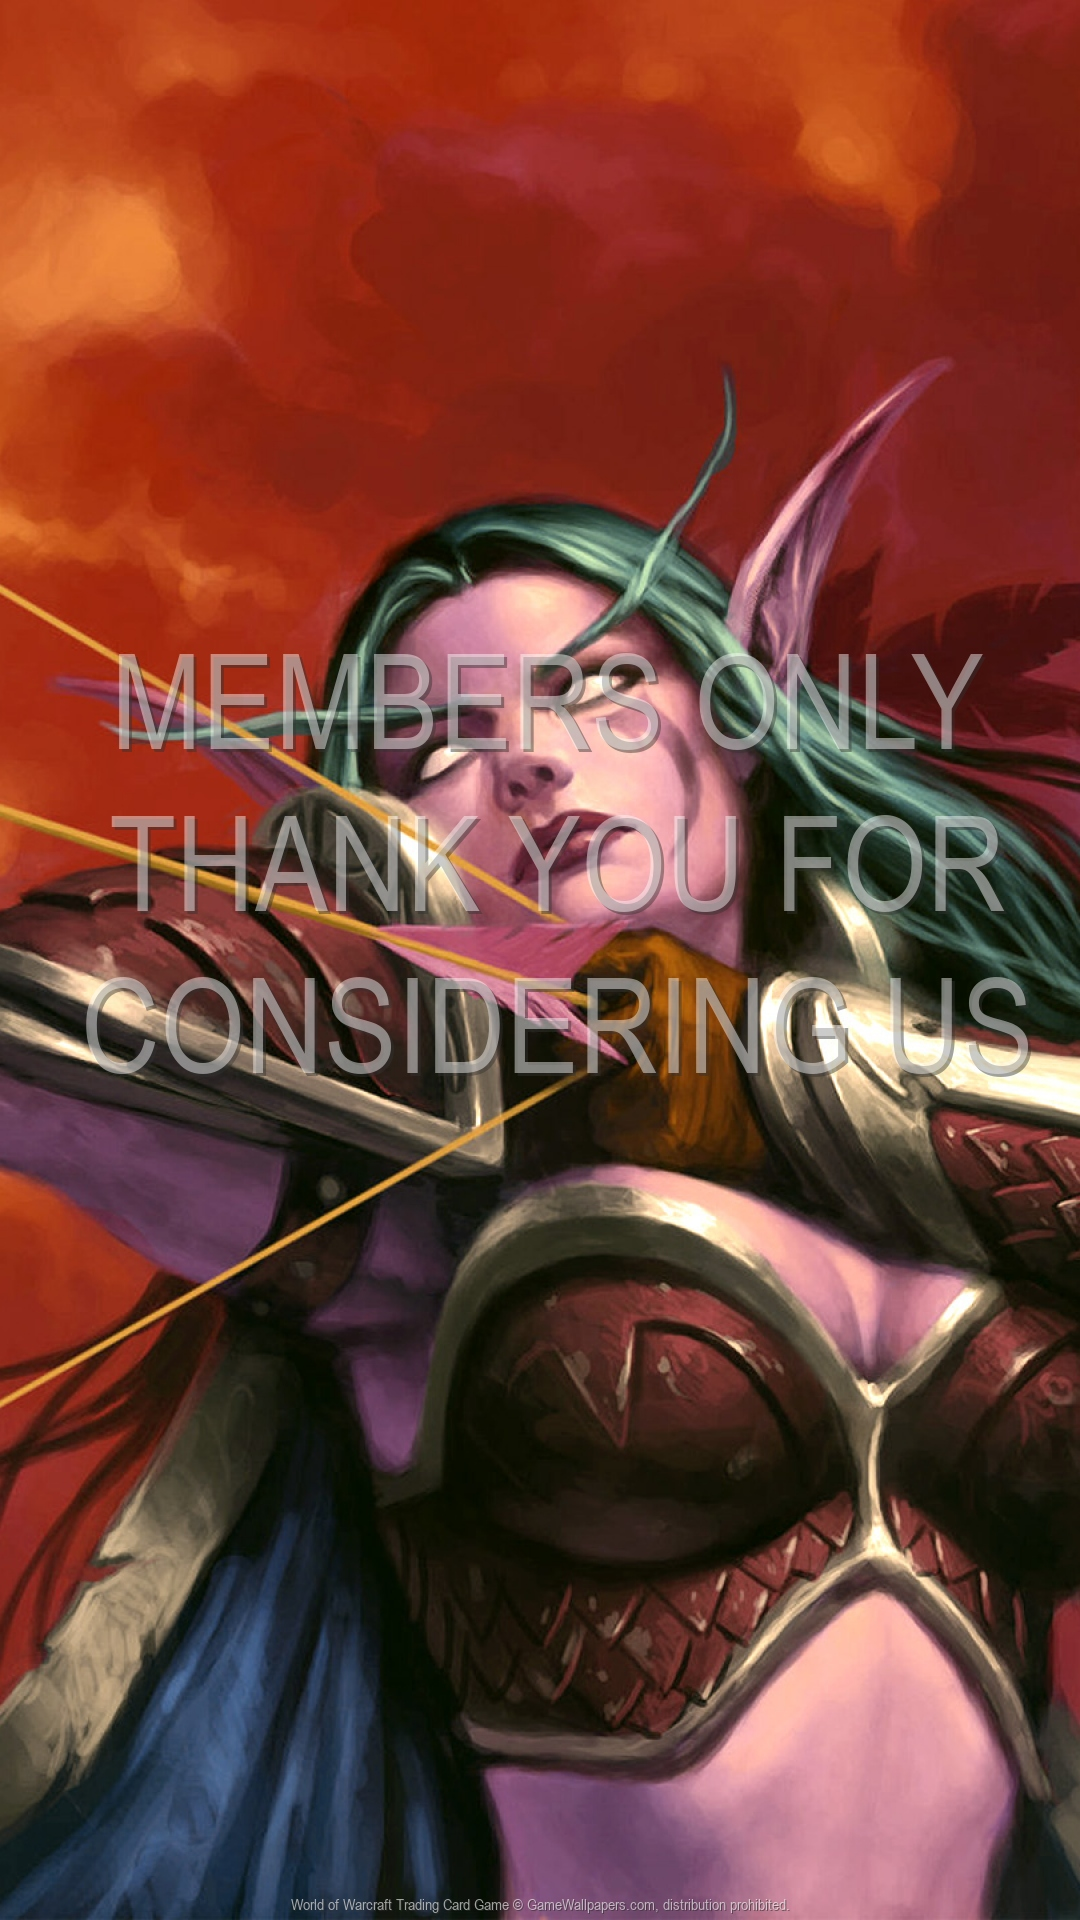 World of Warcraft: Trading Card Game 1920x1080 Handy Hintergrundbild 36